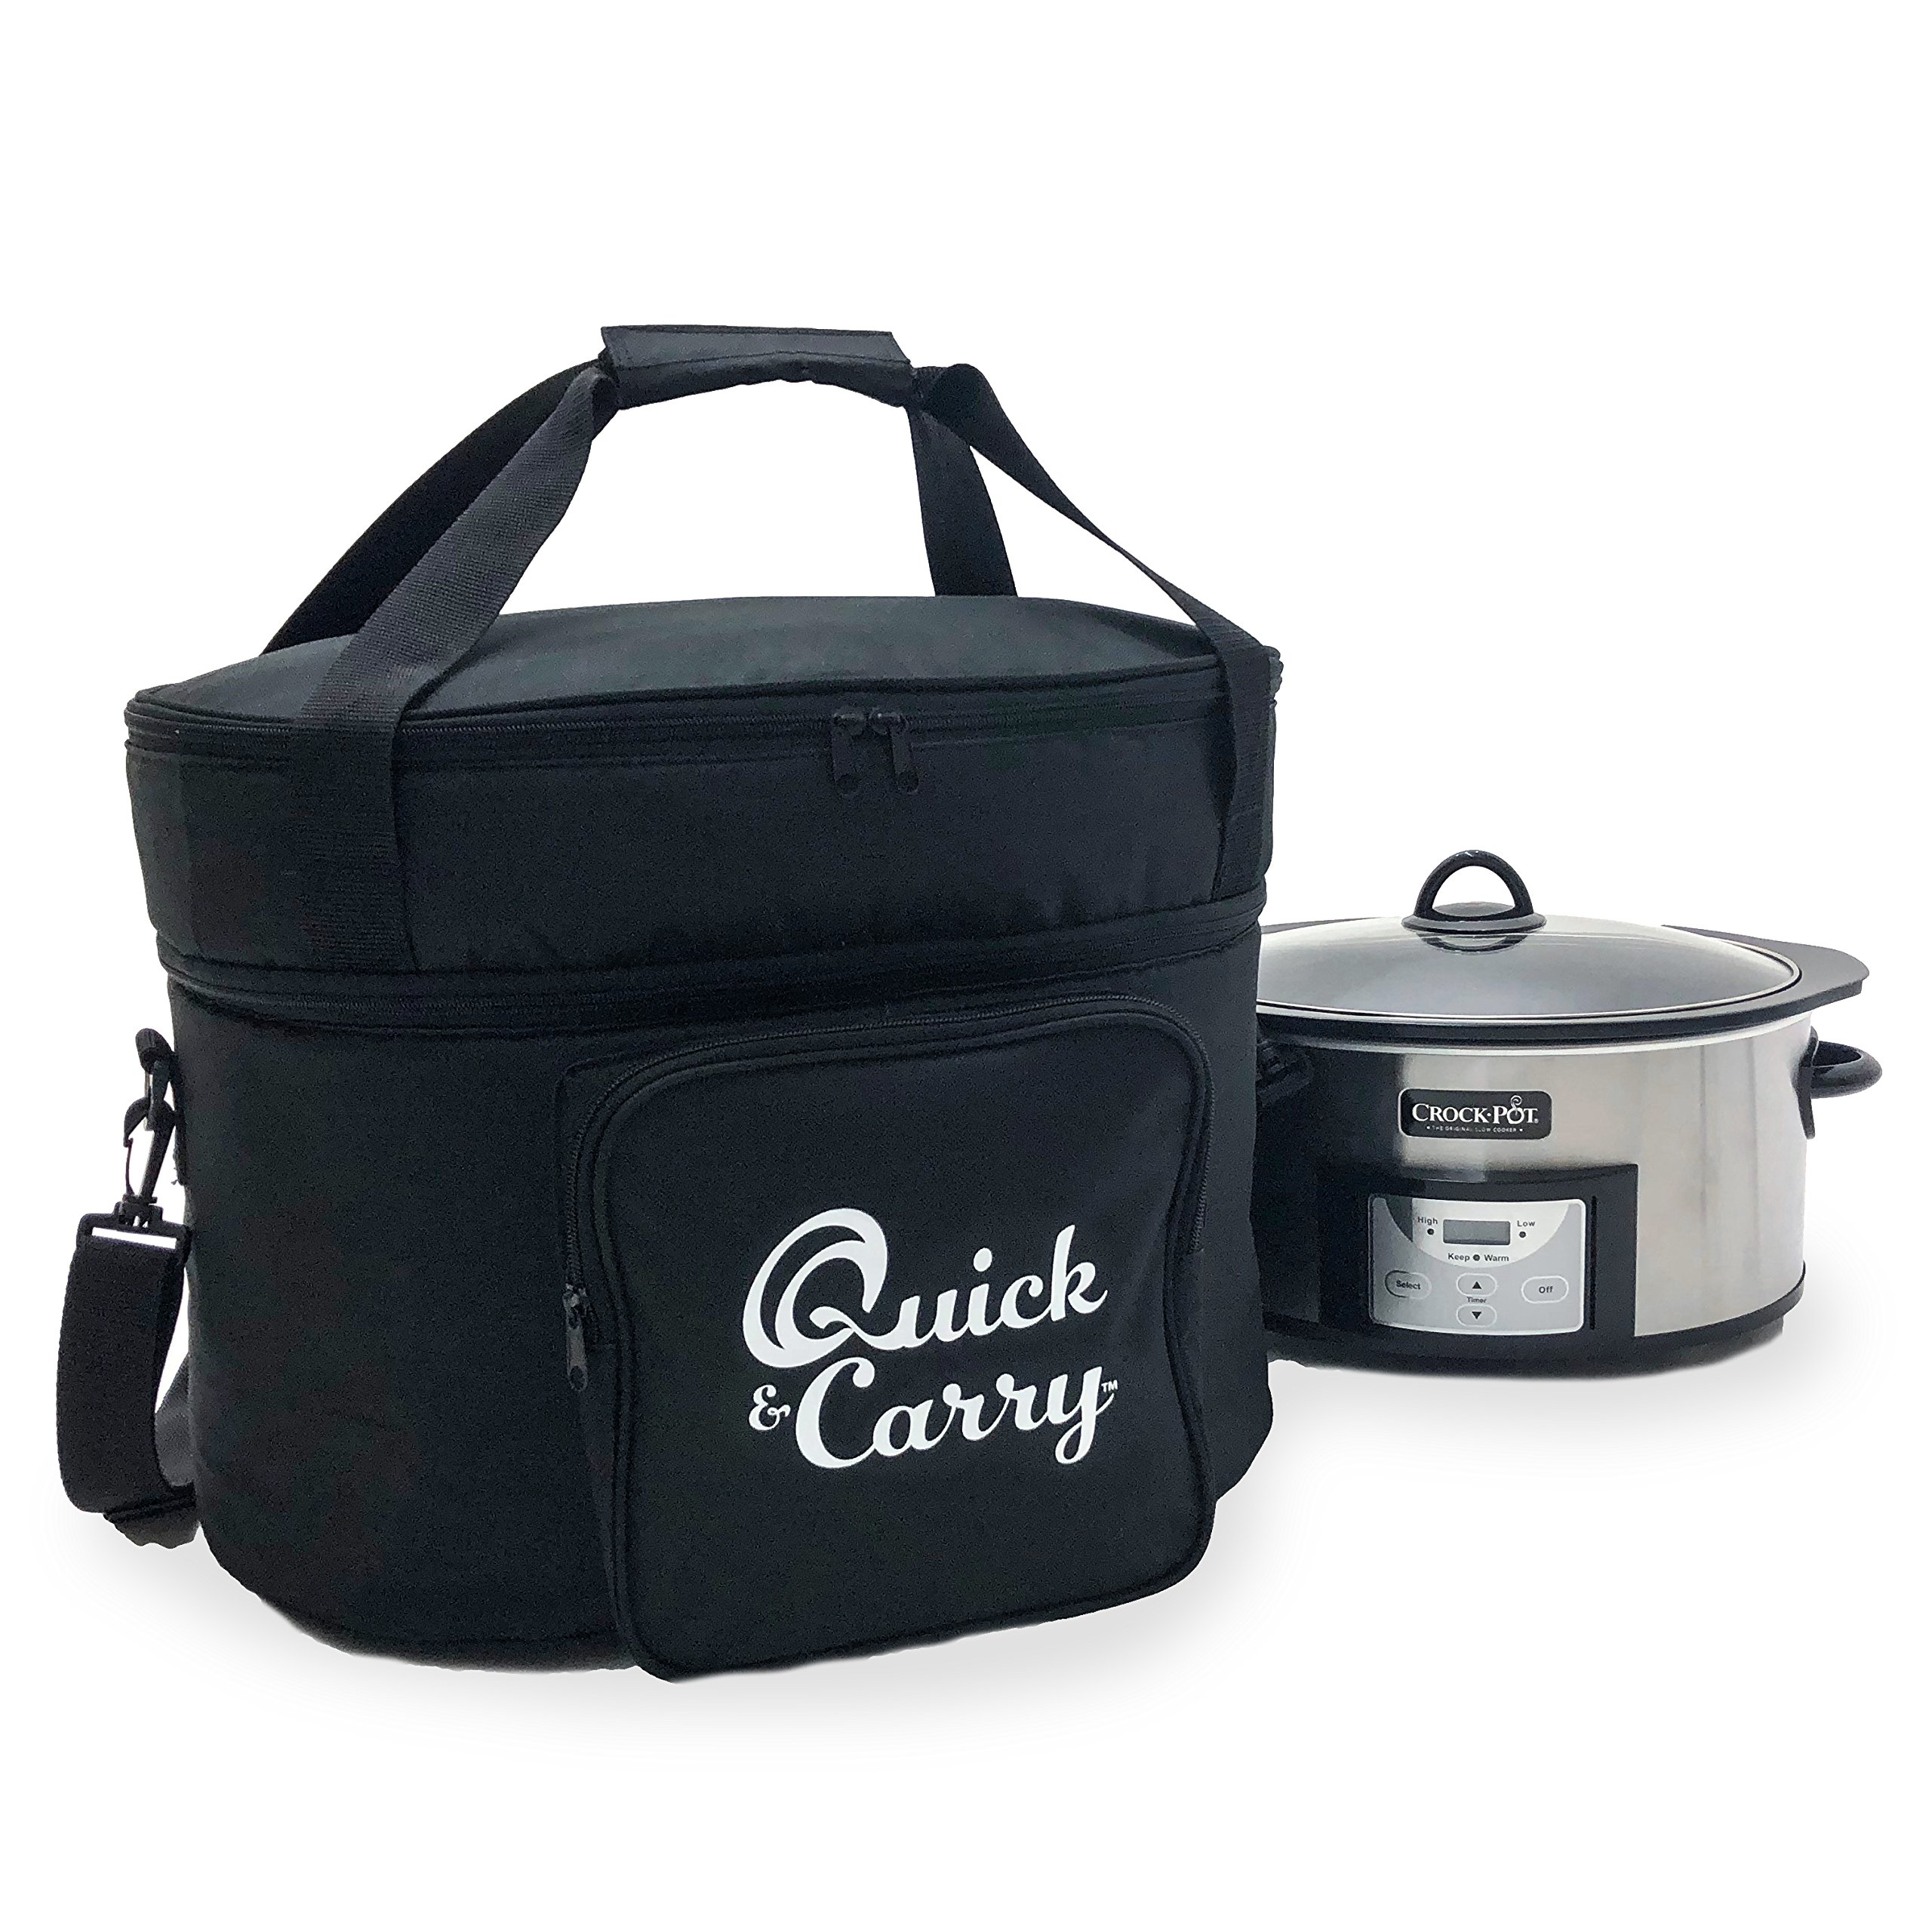 Quick & Carry, Slow Cooker Travel Tote Bag for''Crock Pot'' and Most Oval Shape Slow Cookers, Padded Sides, Zippered Accessory Storage, Carrying Strap and Handle (Slow Cooker)